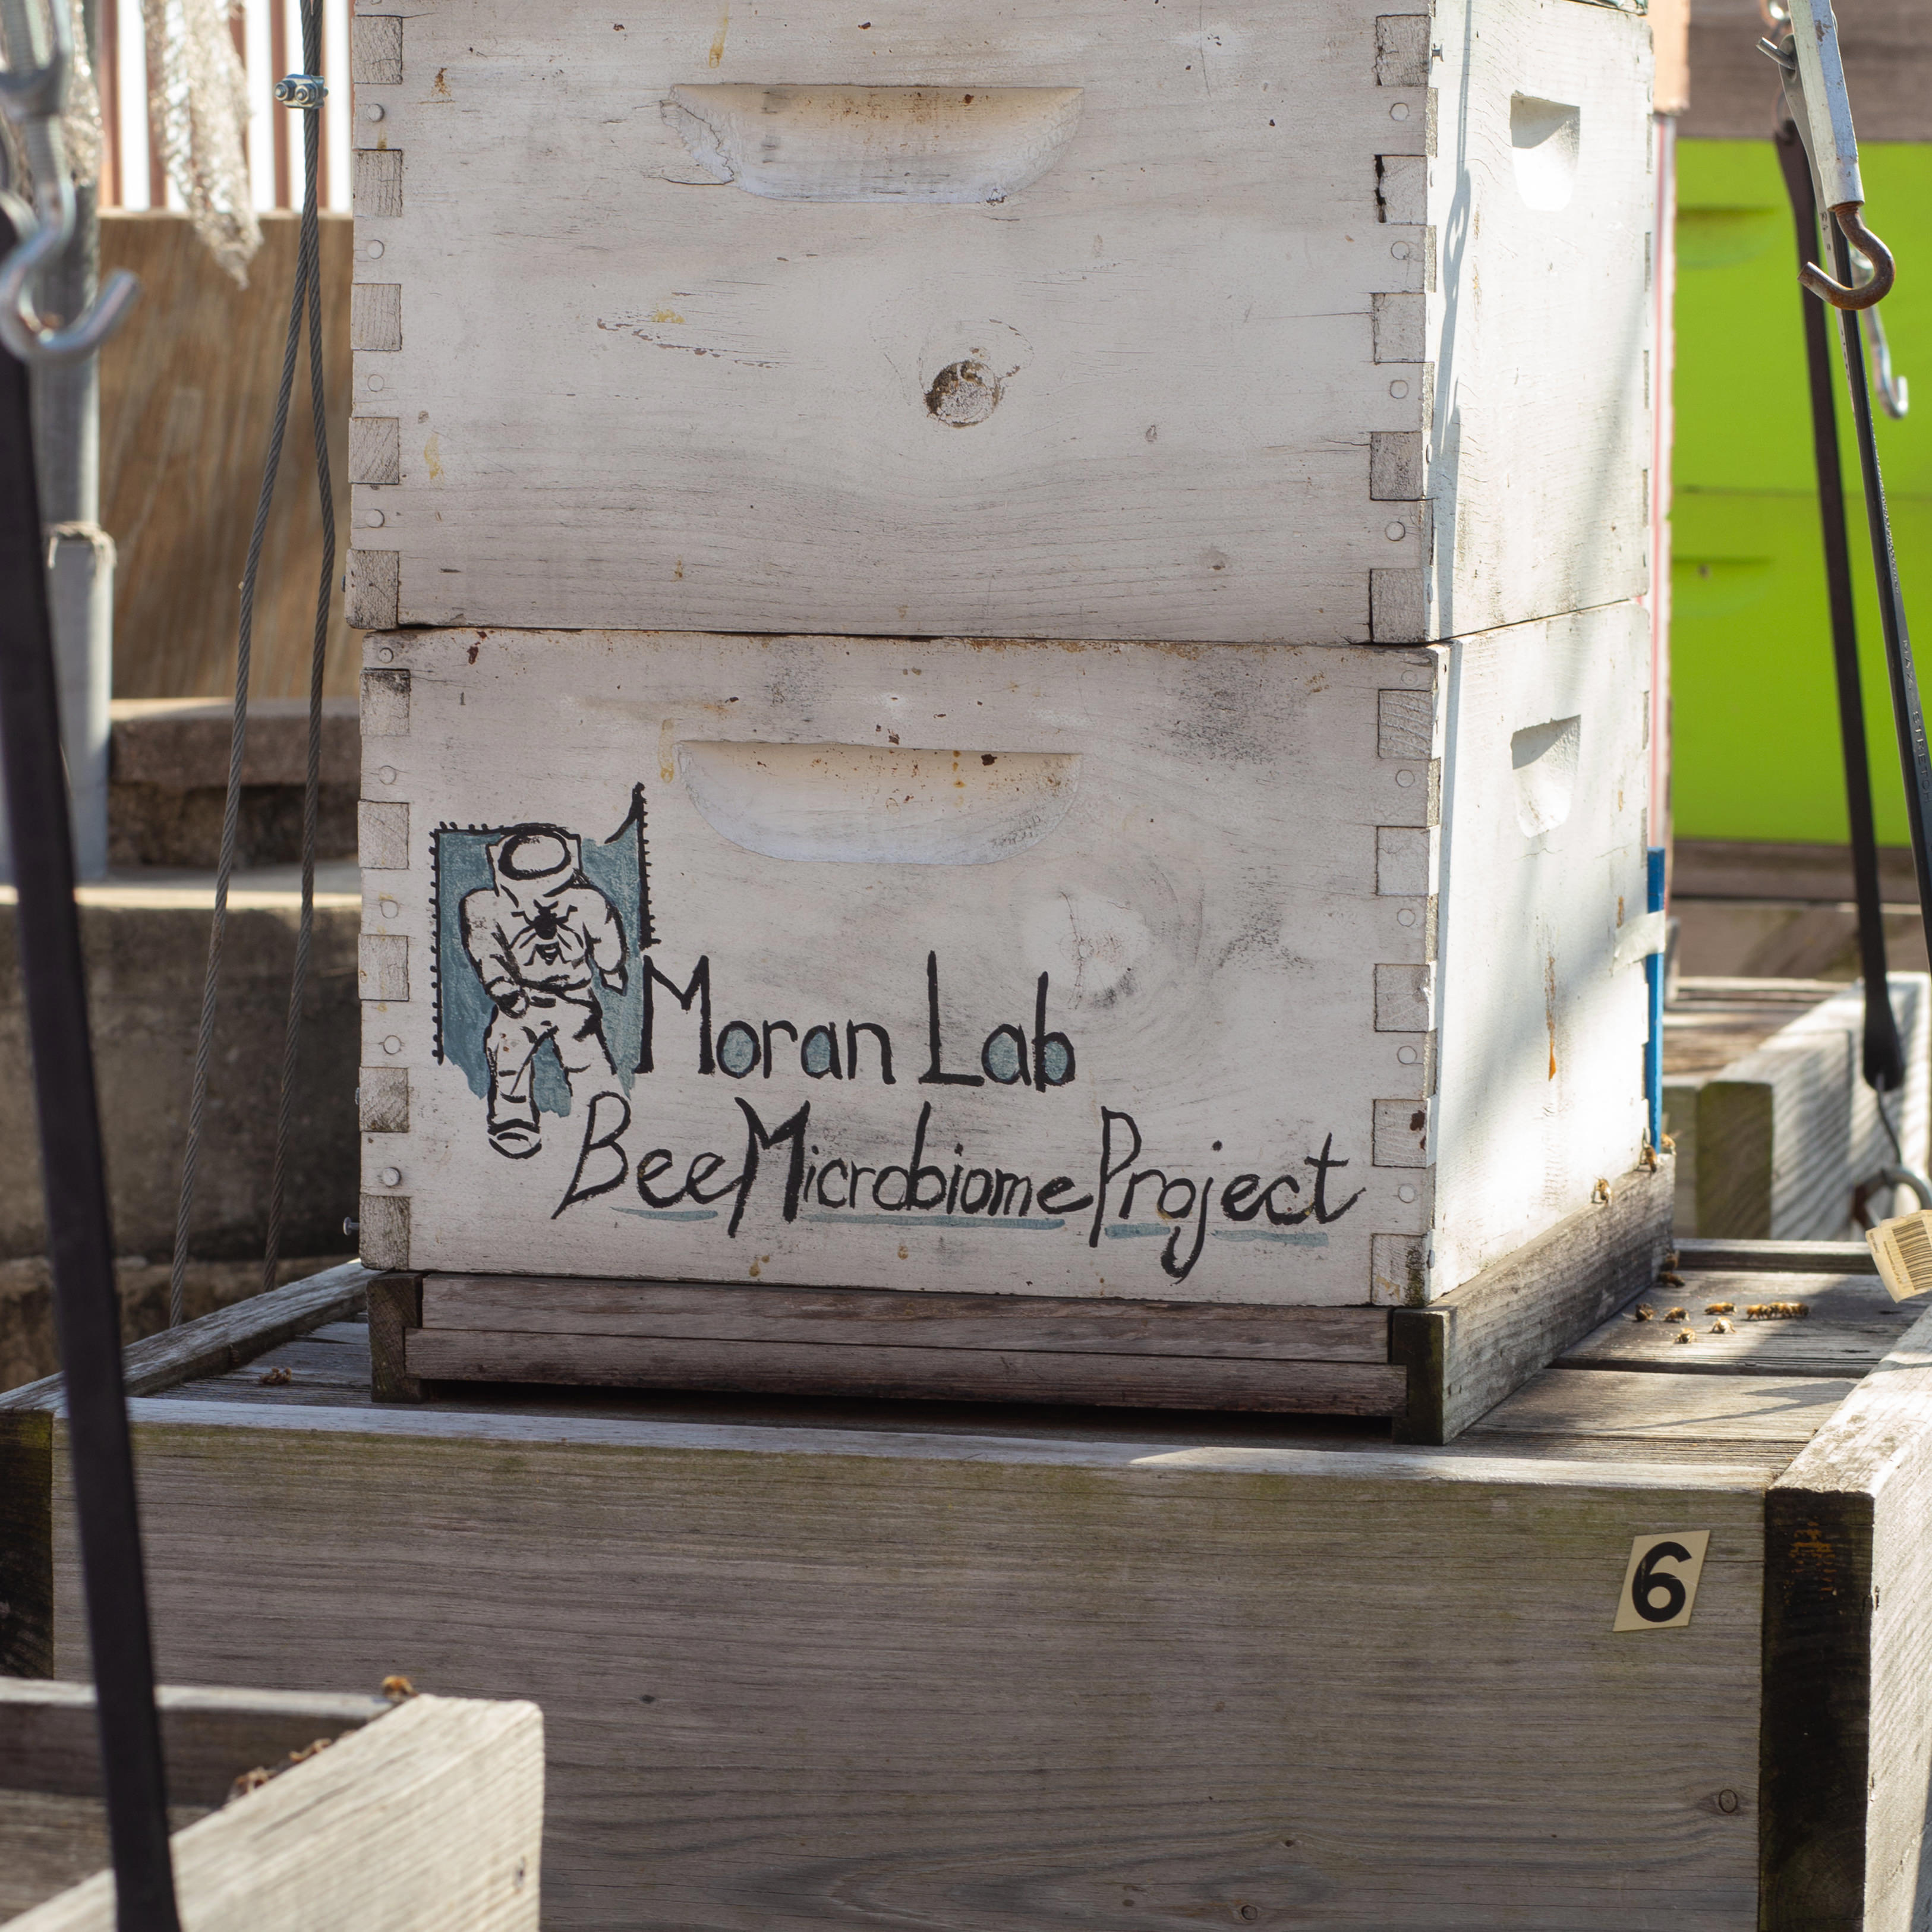 A box of bees from the Moran Lab